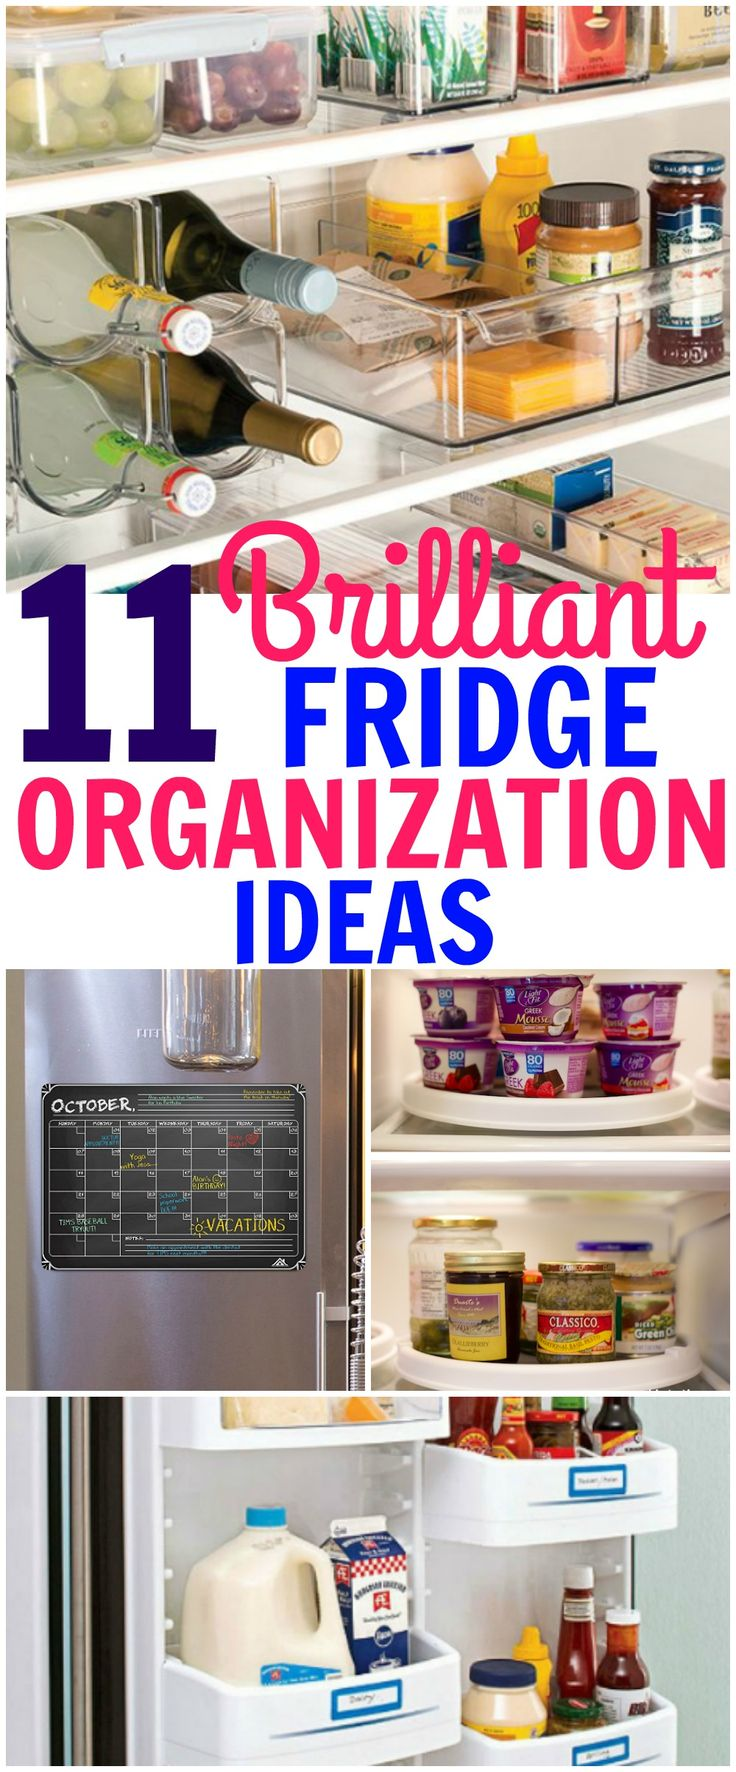 Fridge organization hacks and ideas that will help with storage and and keeping your fridge clean and uniformed.